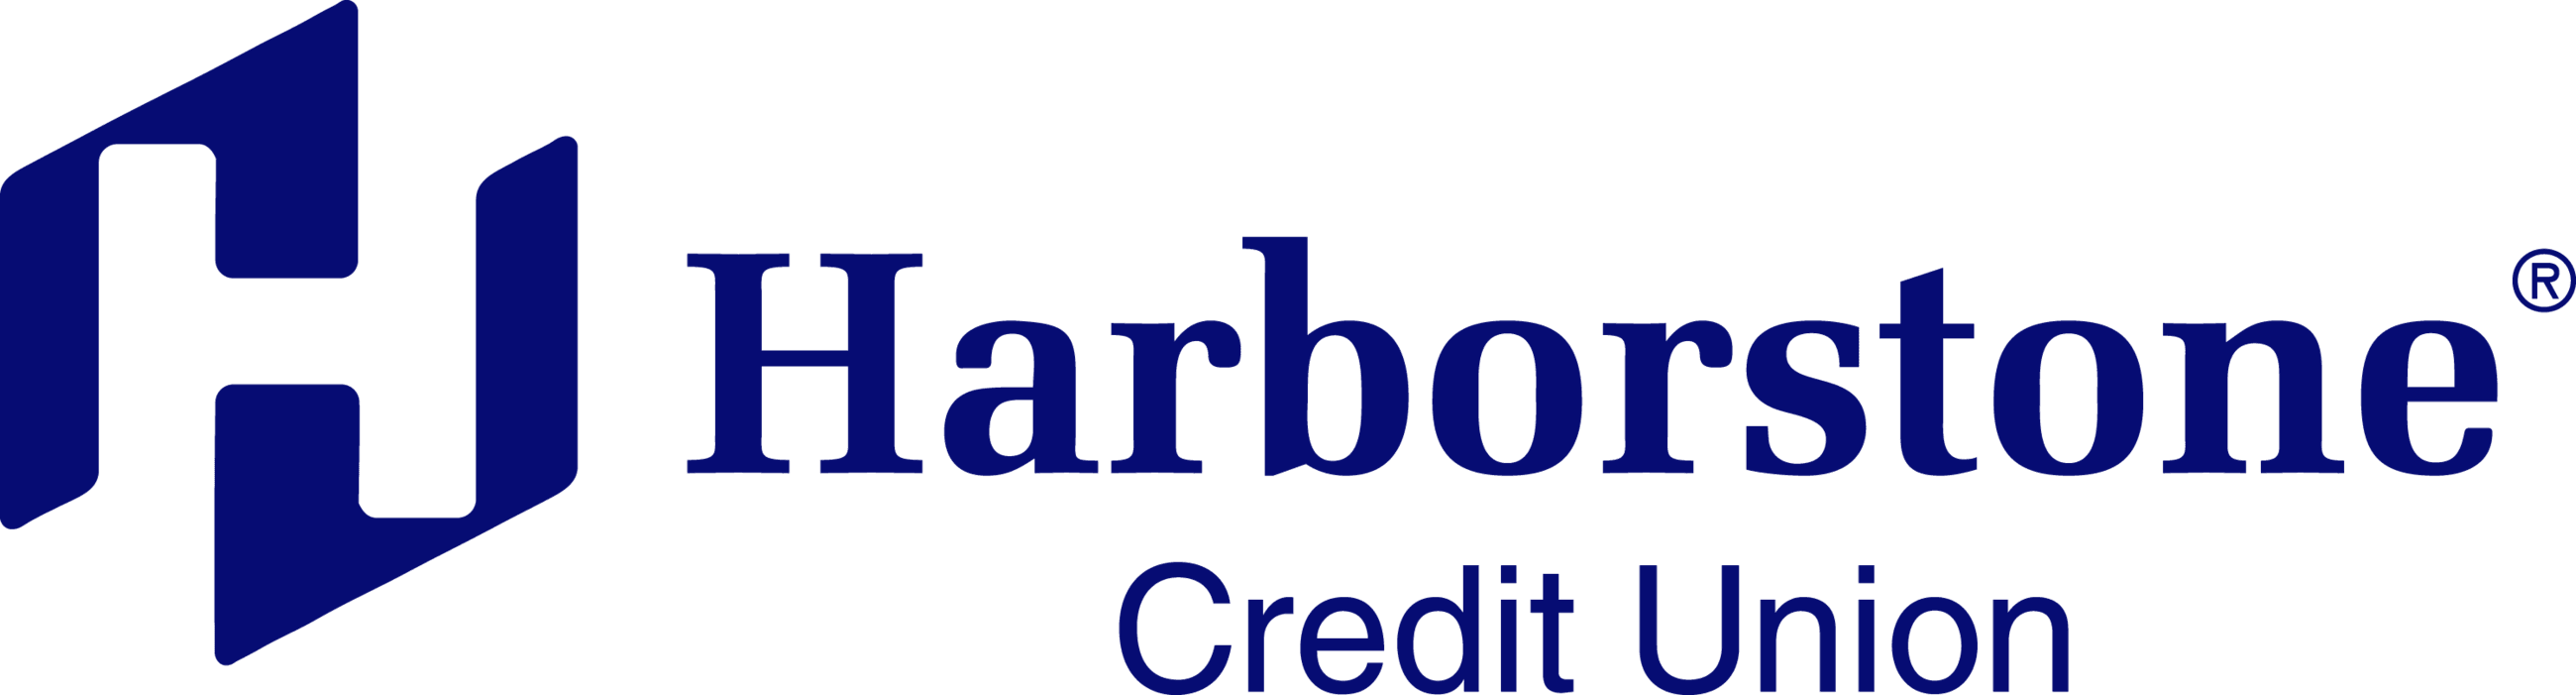 Harborstone Bank logo